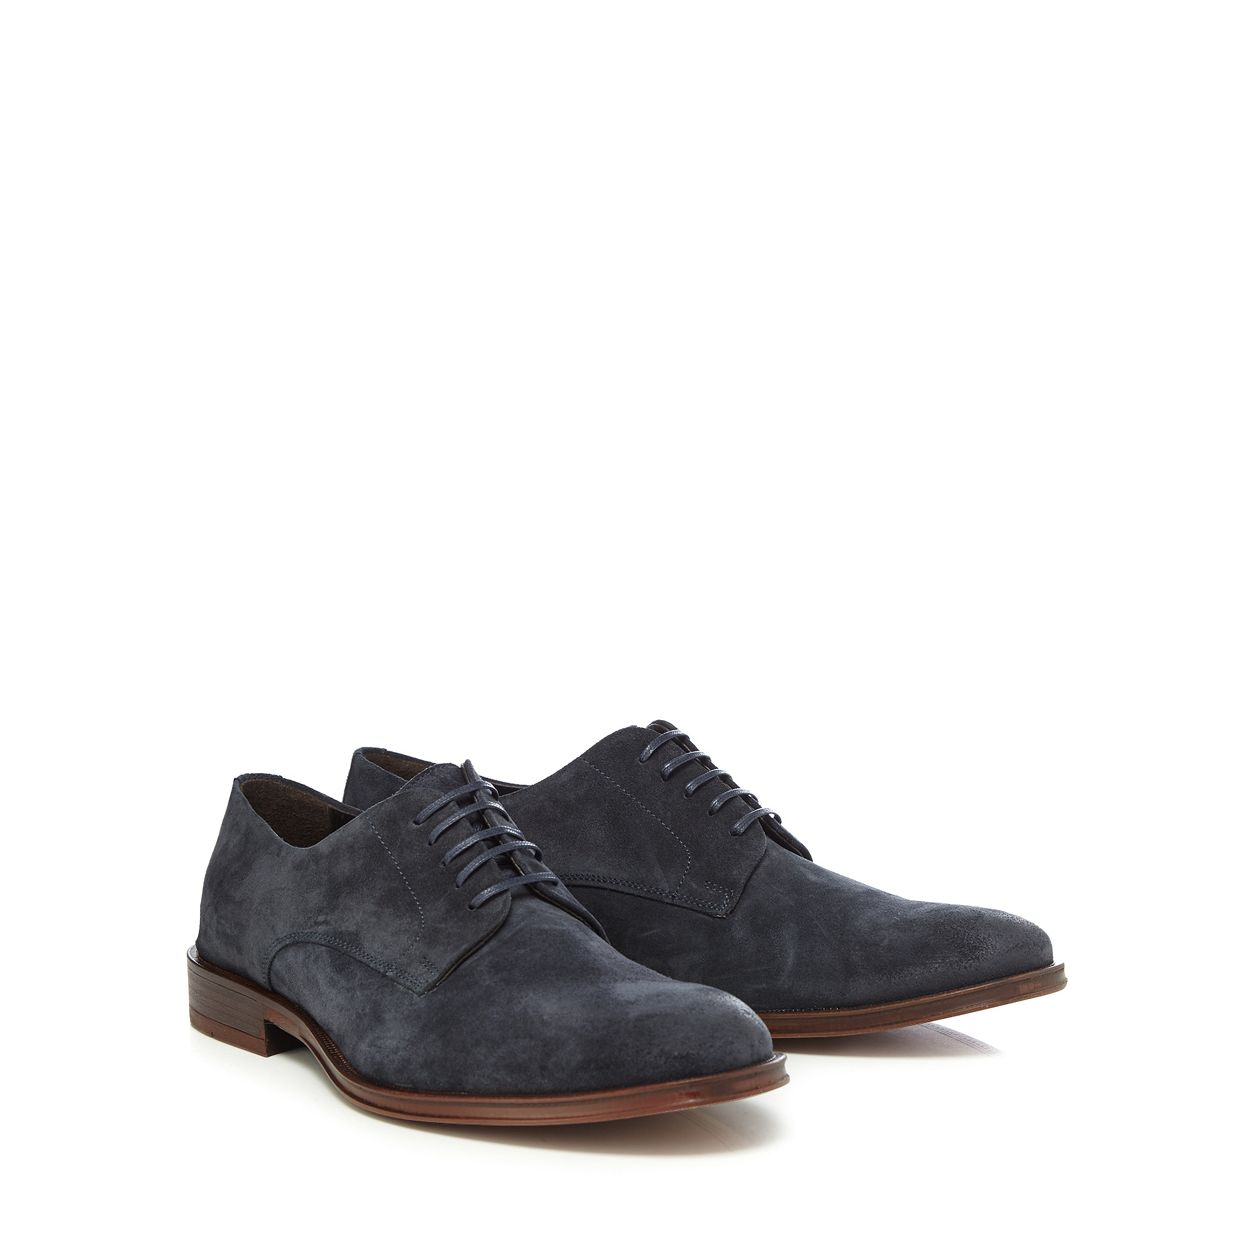 Hammond & Co. by Patrick Grant Blue Navy suede 'Albany' shoes